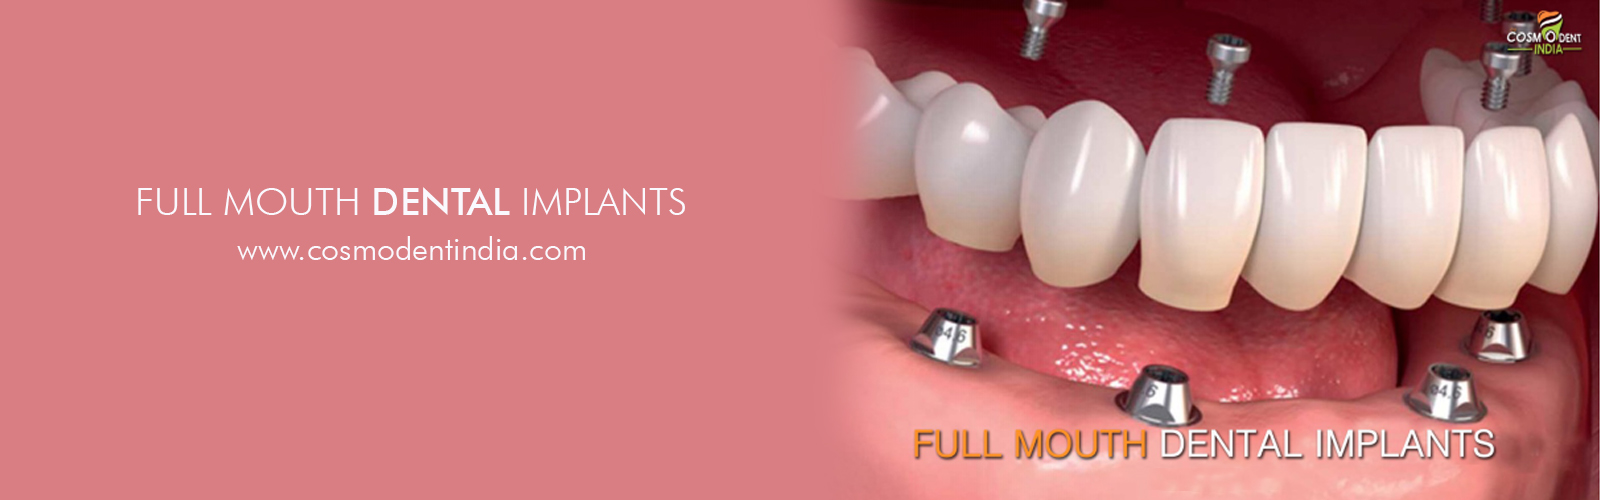 implants dentaires complets en Inde